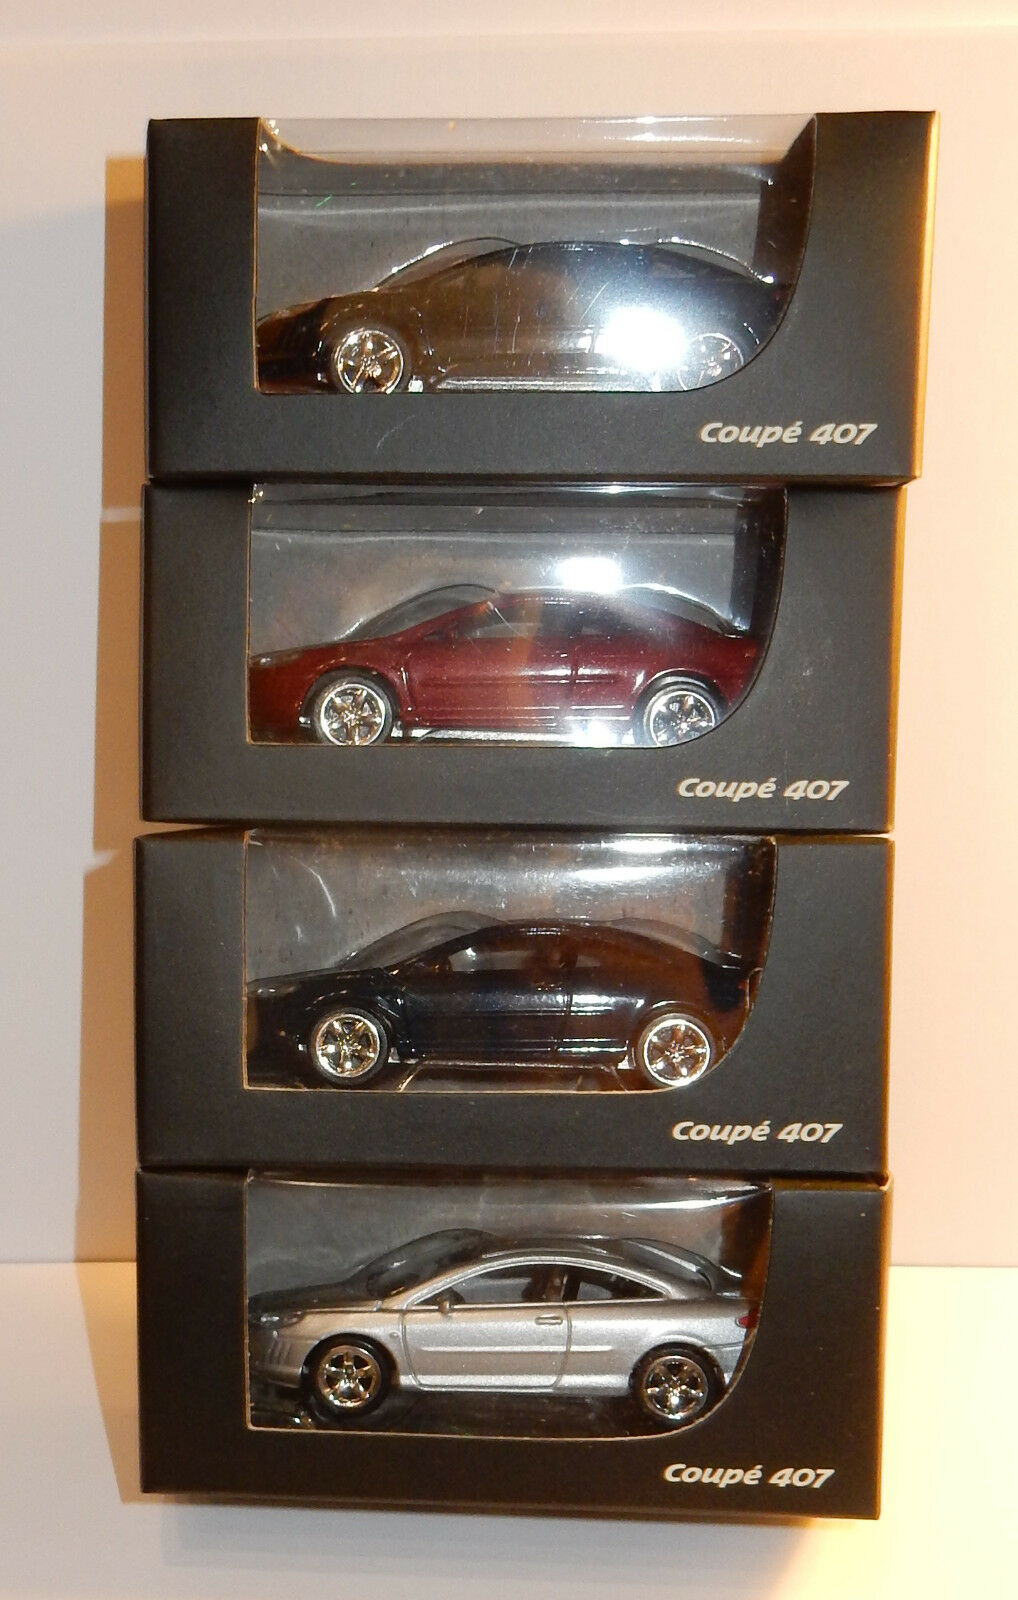 NOREV 3 INCHES 1 64 PEUGEOT 407 COUPE 211 CV 243 KM H in 4 colors to choose from